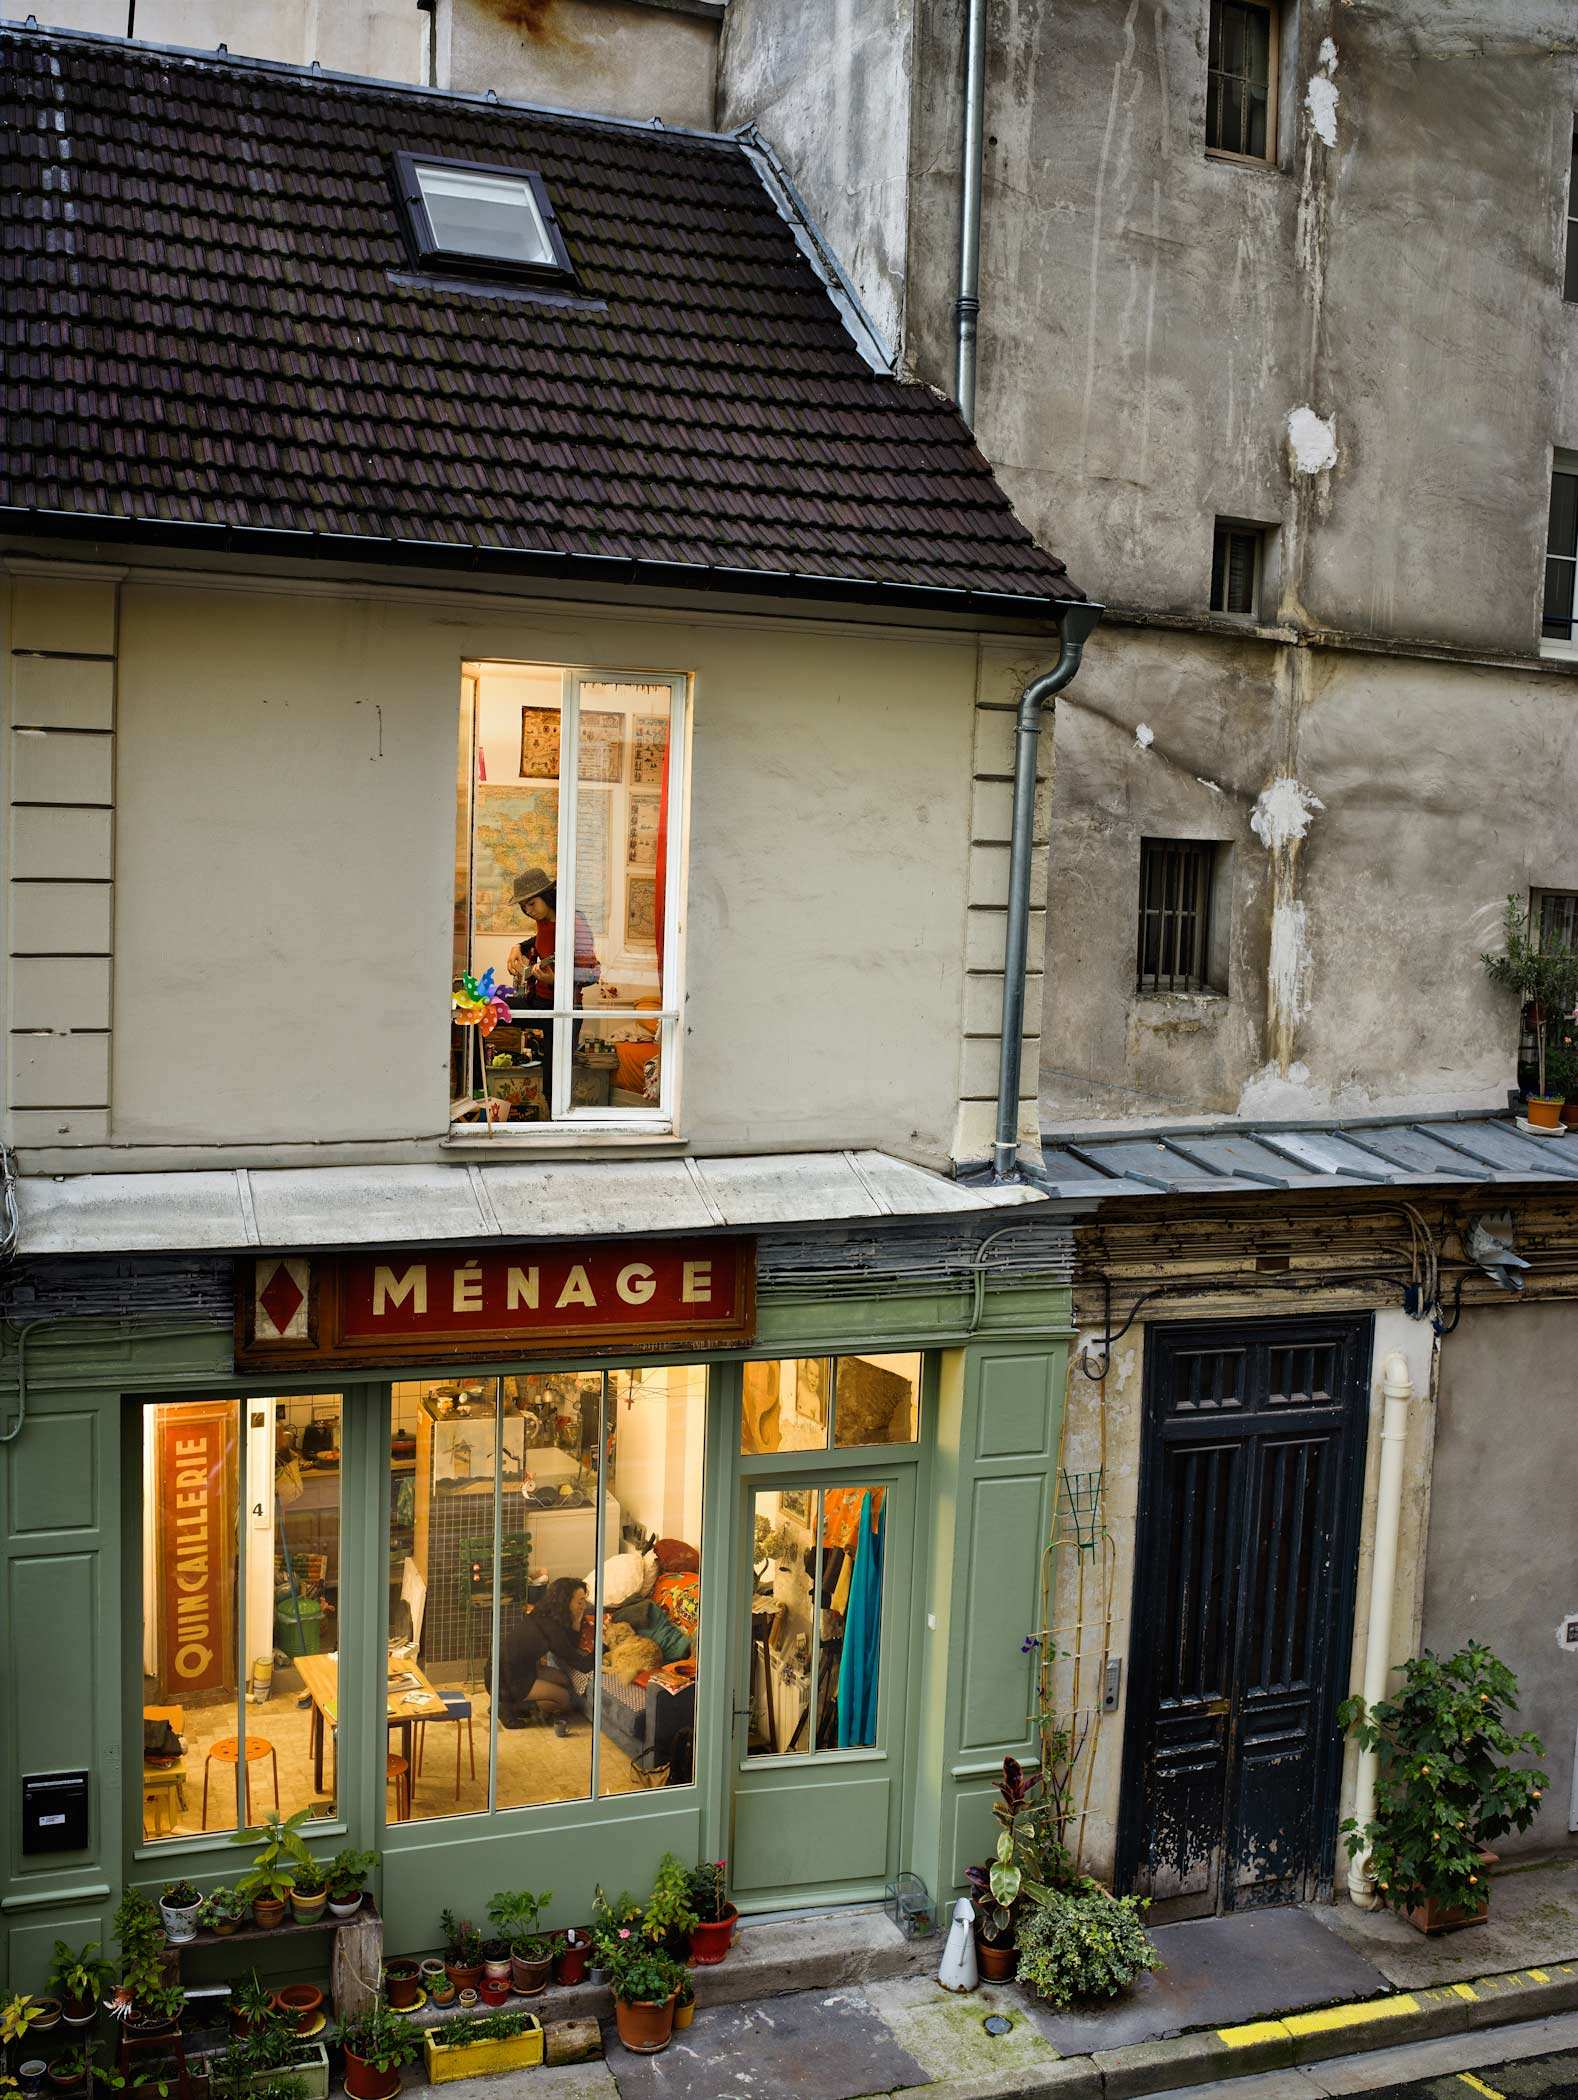 Passage de Desir, rue du Faubourg-Saint-Denis, 10e arrondissement Paris - Gail Albert Halaban